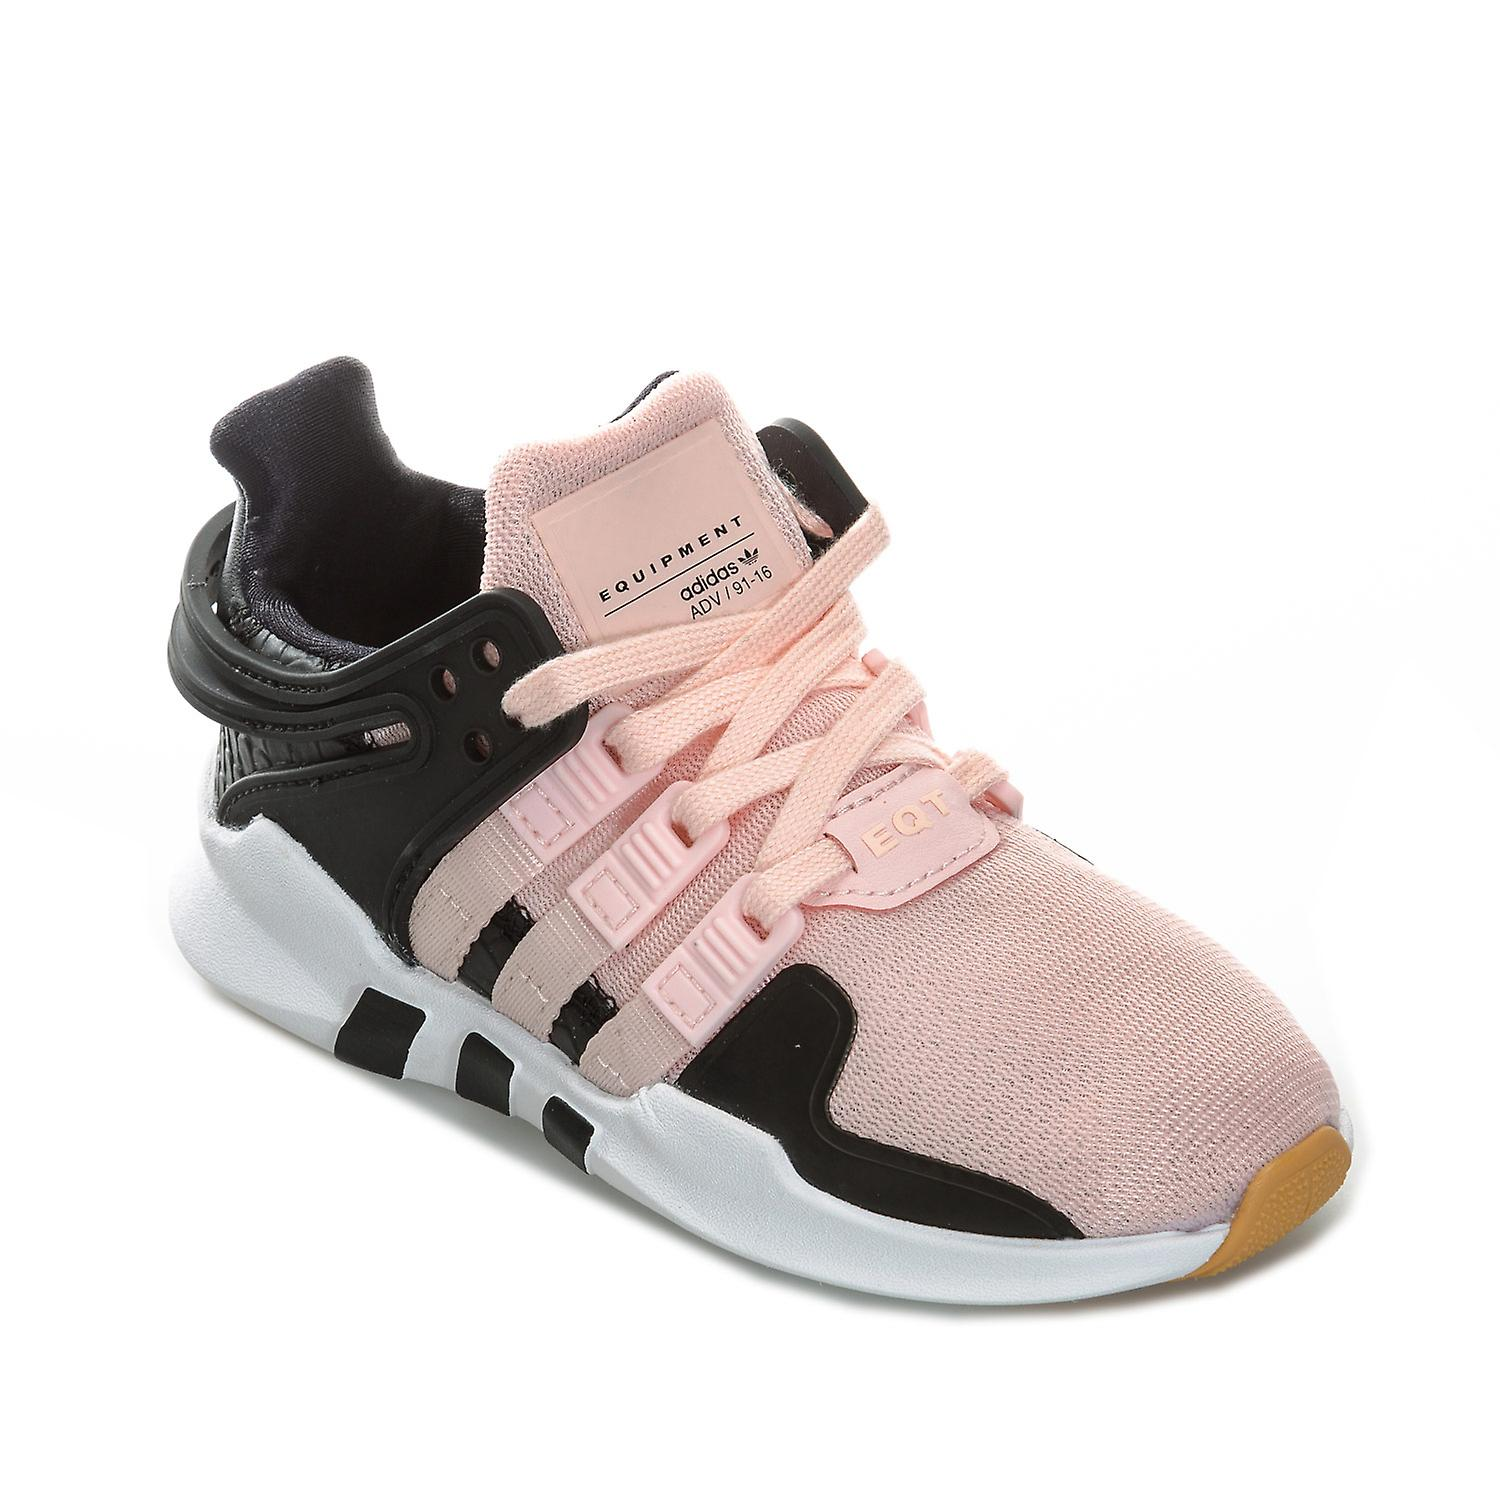 47d304d1e87a Children Girls adidas Originals Eqt Support Adv Trainers In Pink- Lace